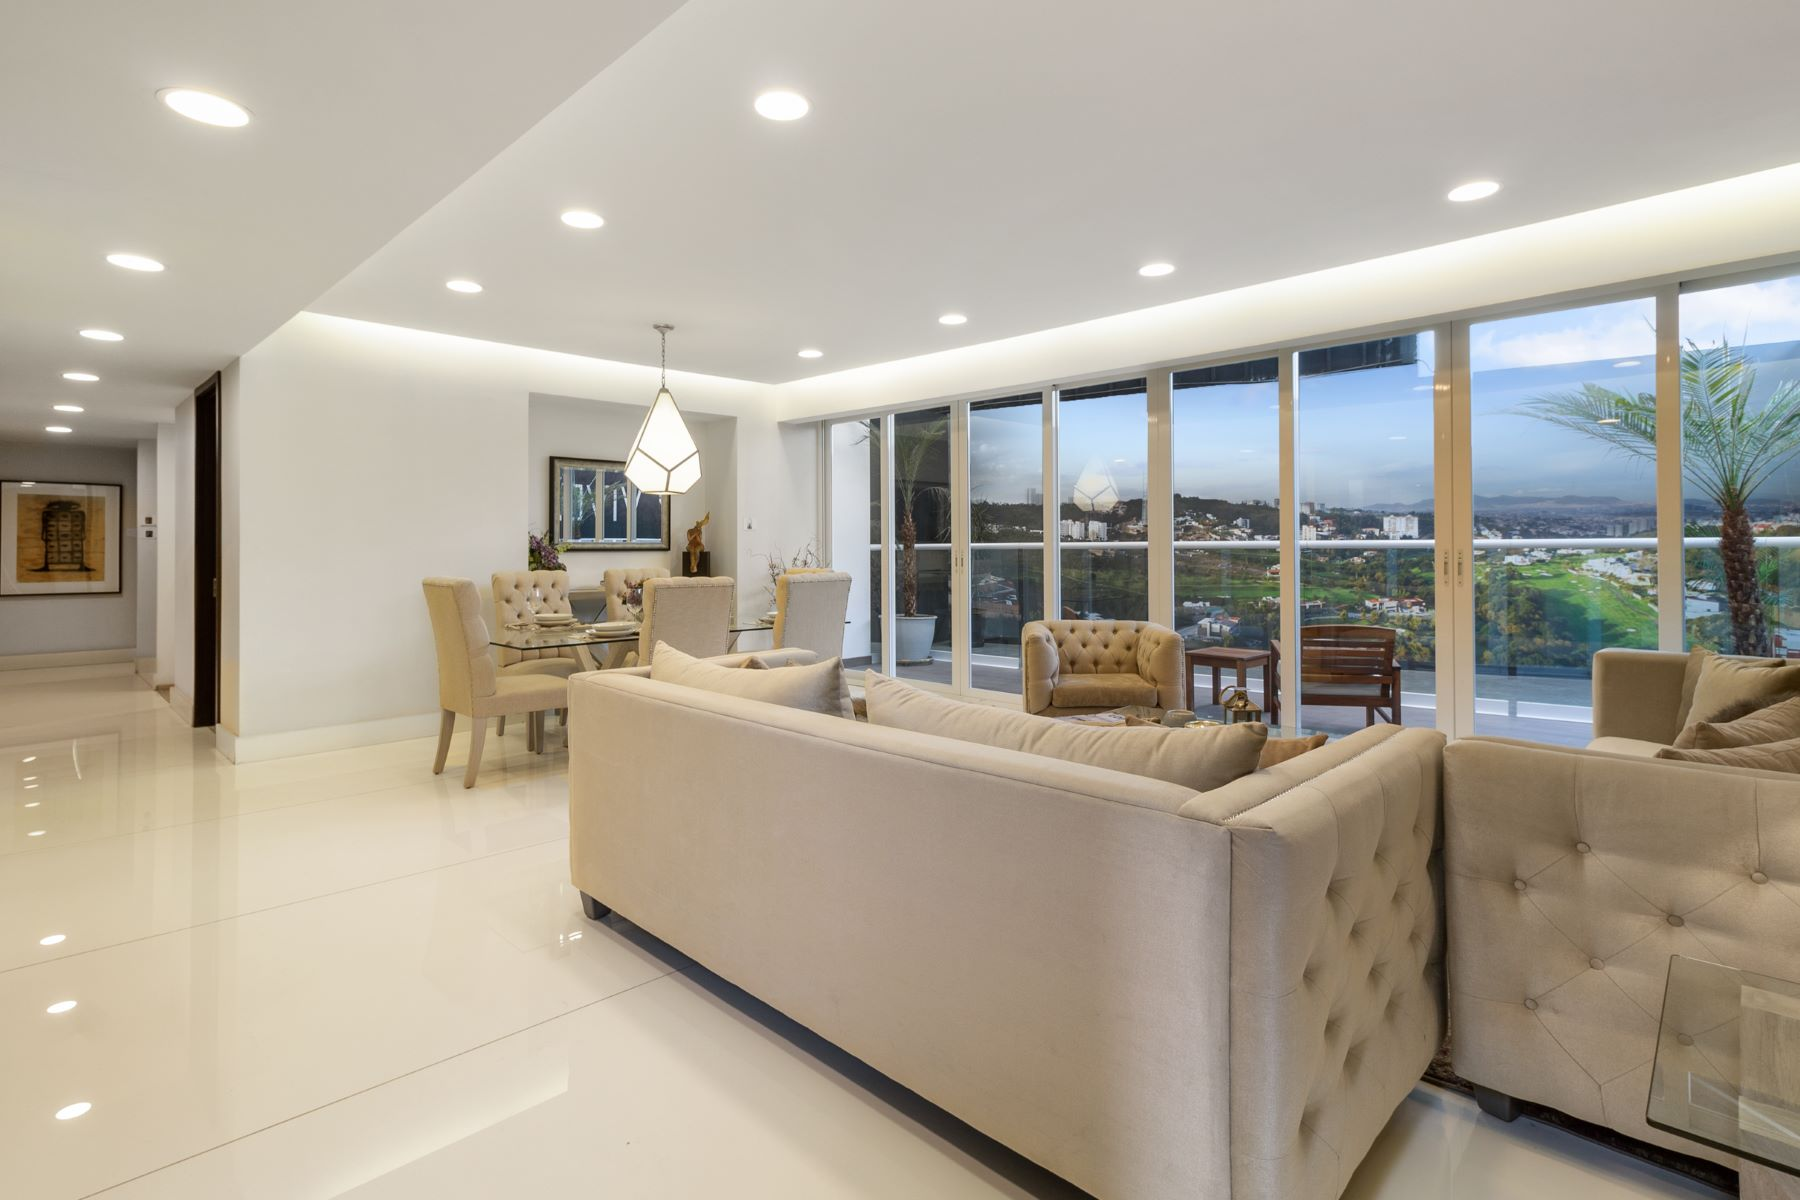 Apartments for Sale at Bosque Real Five Blvd Bosque Real 16, Lotes A y 17 A Other Mexico, Mexico 52770 Mexico